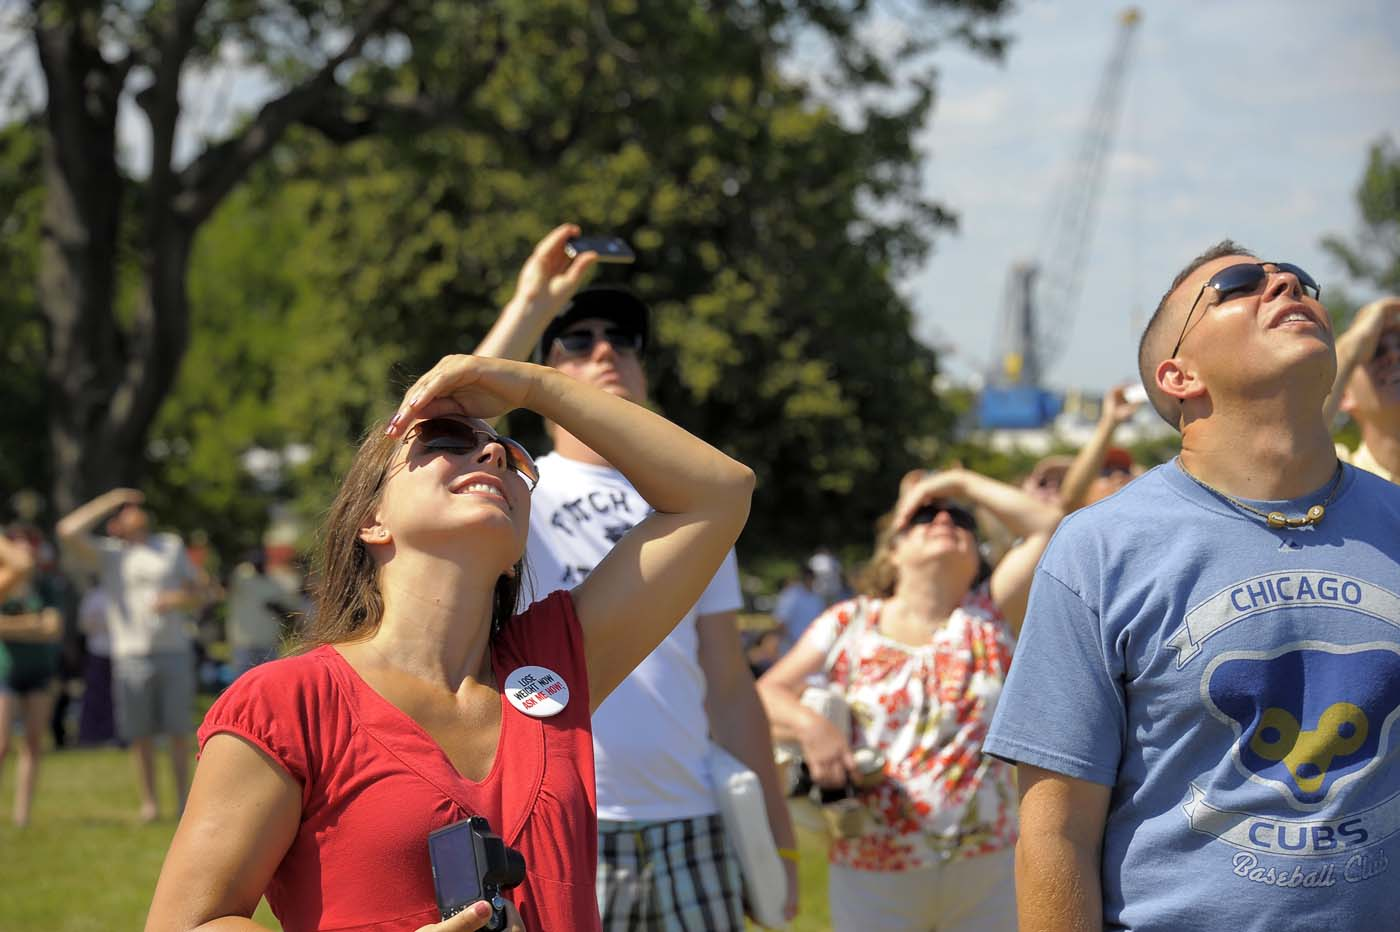 Spectators watch the skies for the Blue Angels during the weekend-long Star Spangled Sailabration 200 at Fort McHenry Saturday, Jun 16, 2012. (Karl Merton Ferron/Baltimore Sun)